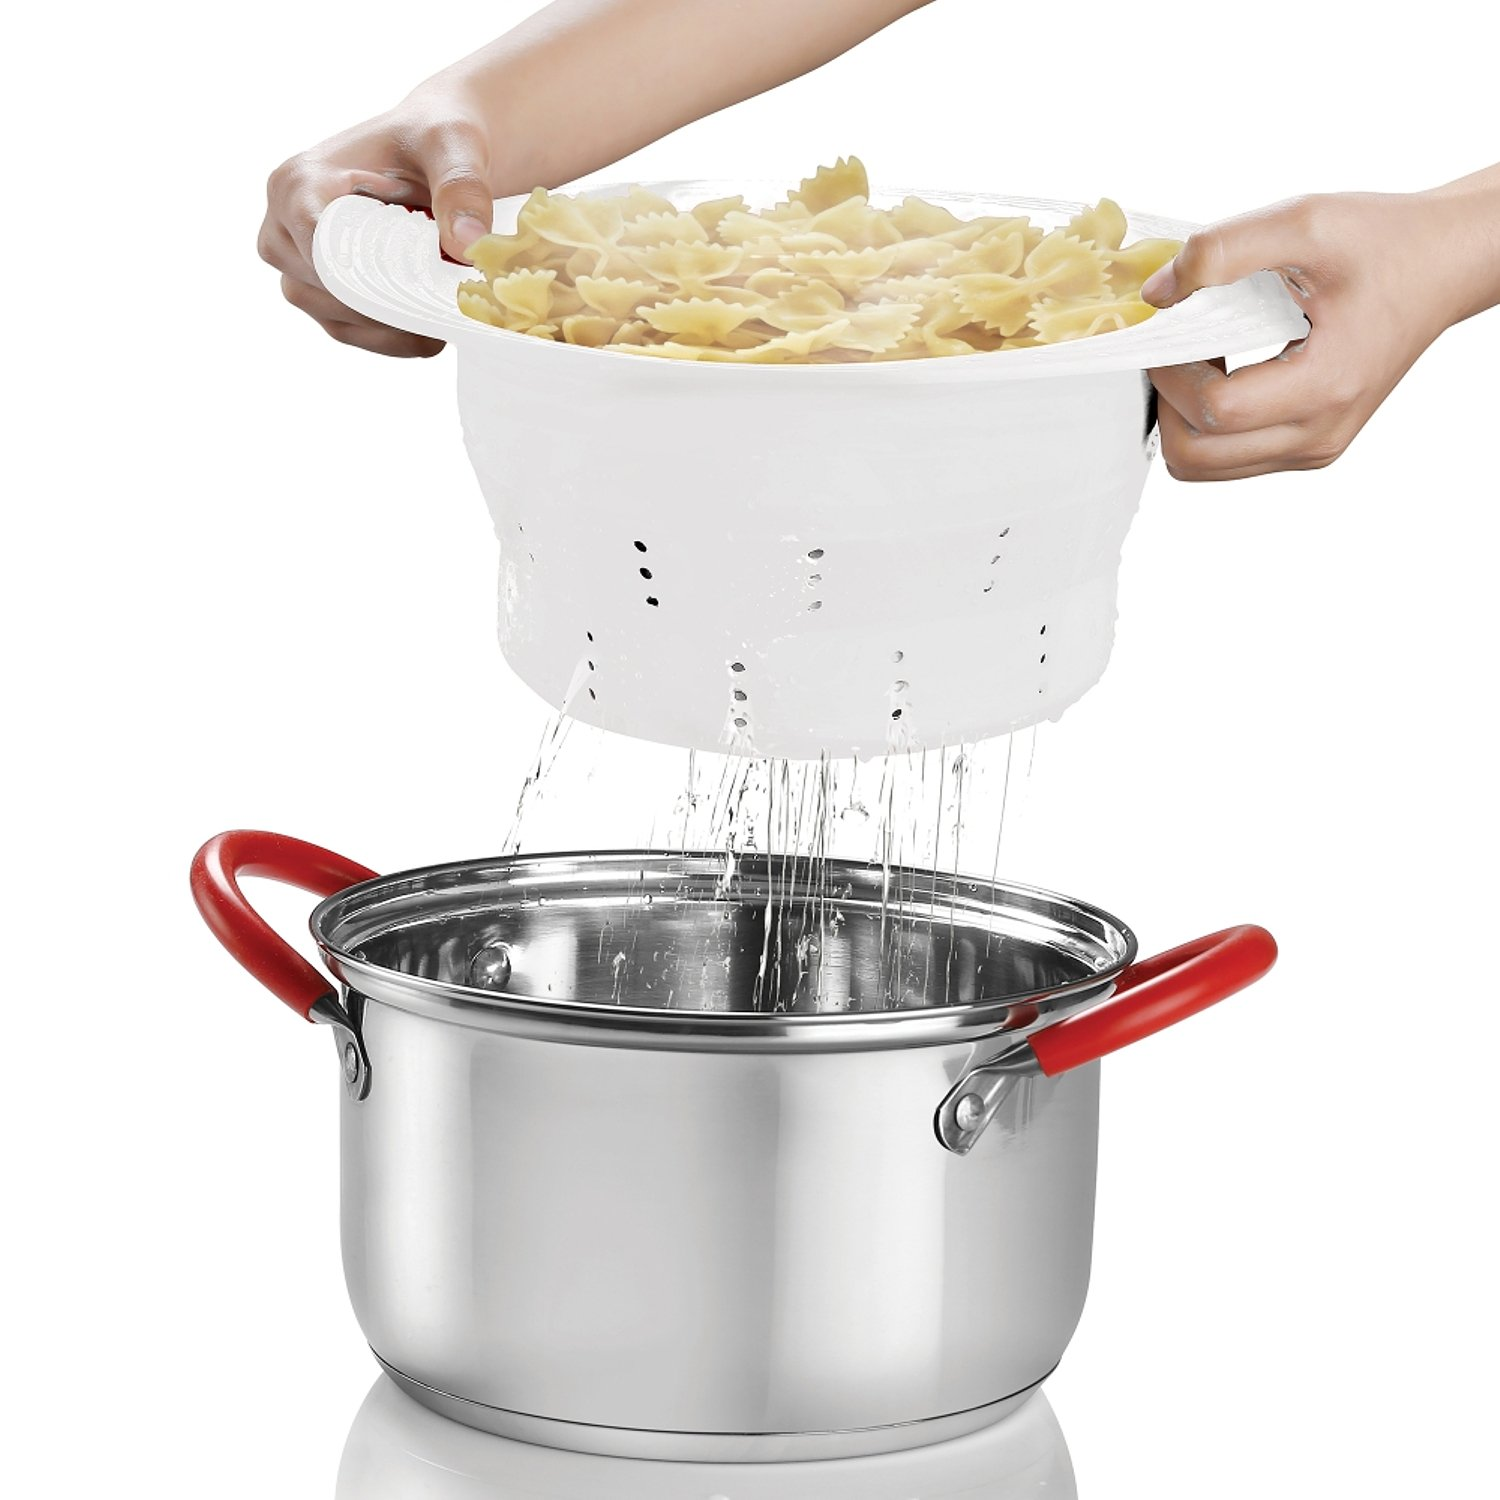 INNOKA Collapsible Silicone Colander Strainer, Foldable Strainer Sizes 10.4, Heat-Resistant, Microwave & Freezer Safe, Steam Basket for Spaghetti, Fruits, Pasta and Veggies - Dishwasher Safe - White 4335998015